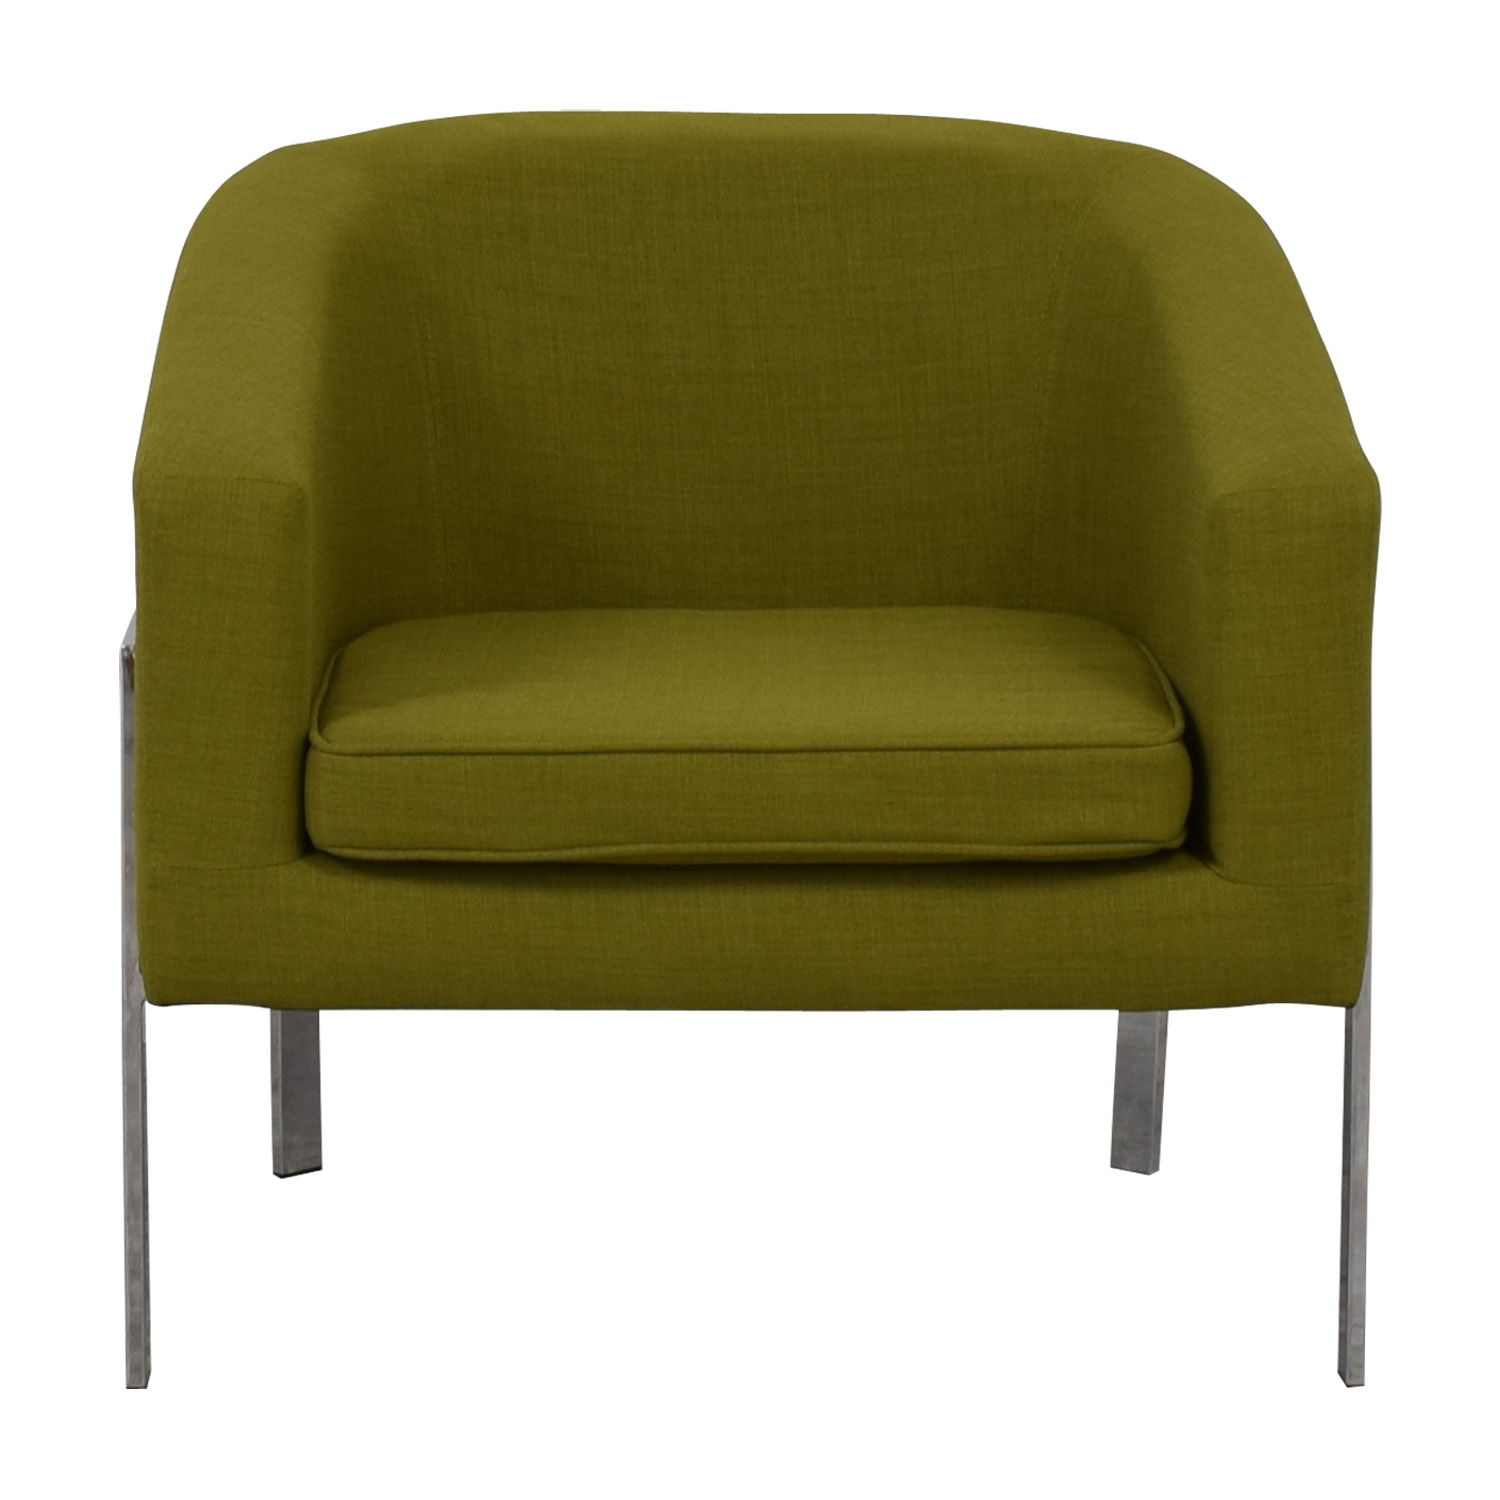 Coaster Coaster Green Accent Chair discount